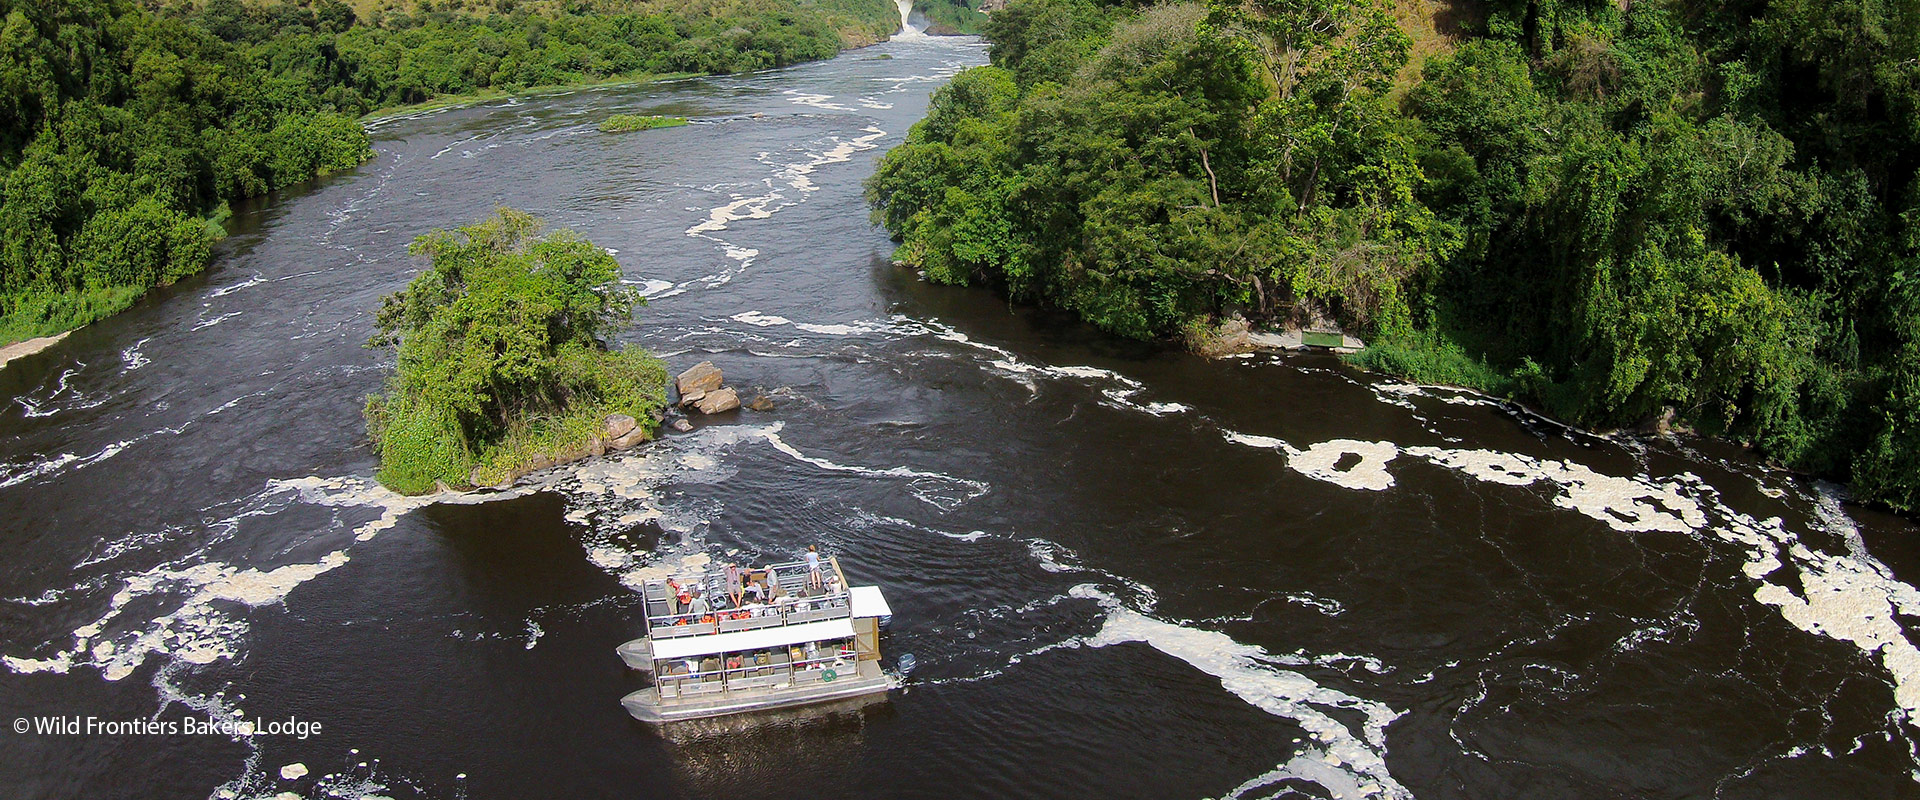 Murchison Falls National Park Africa Geographic Travel